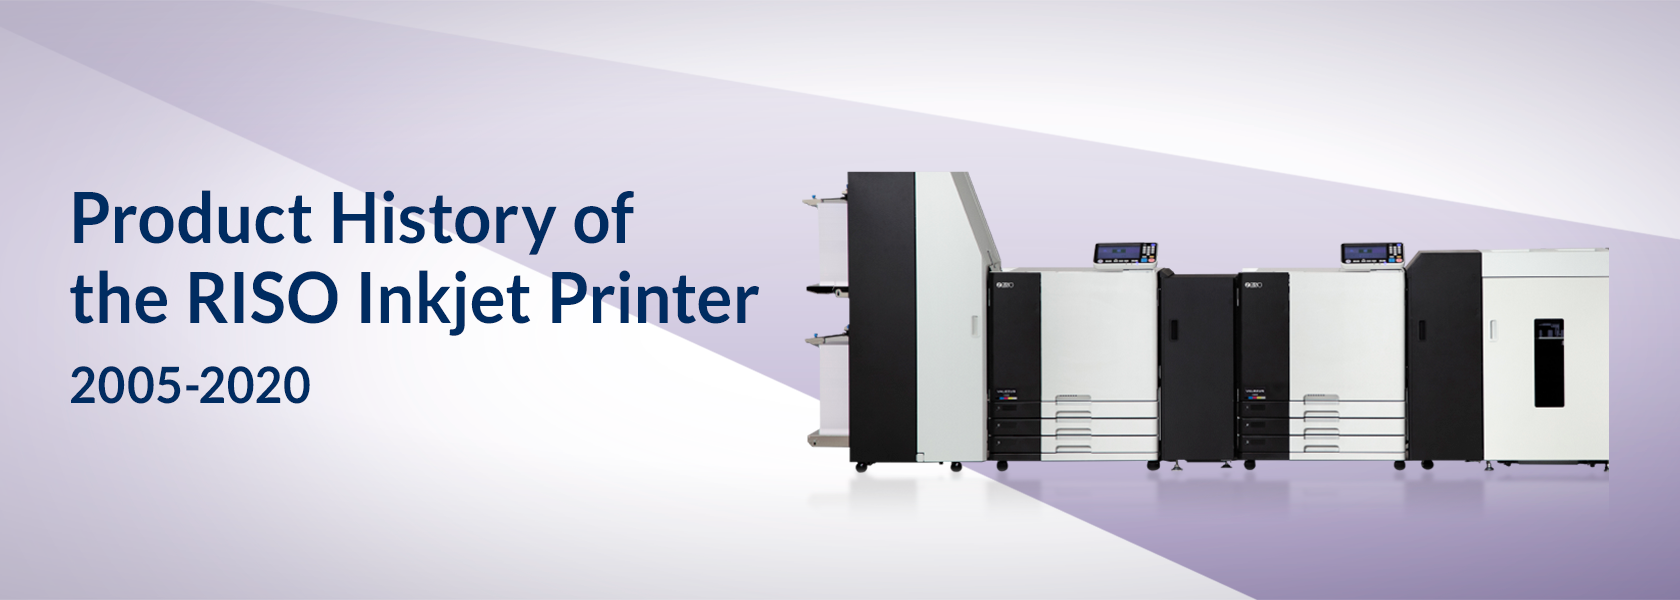 Product History of the RISO Inkjet Printer